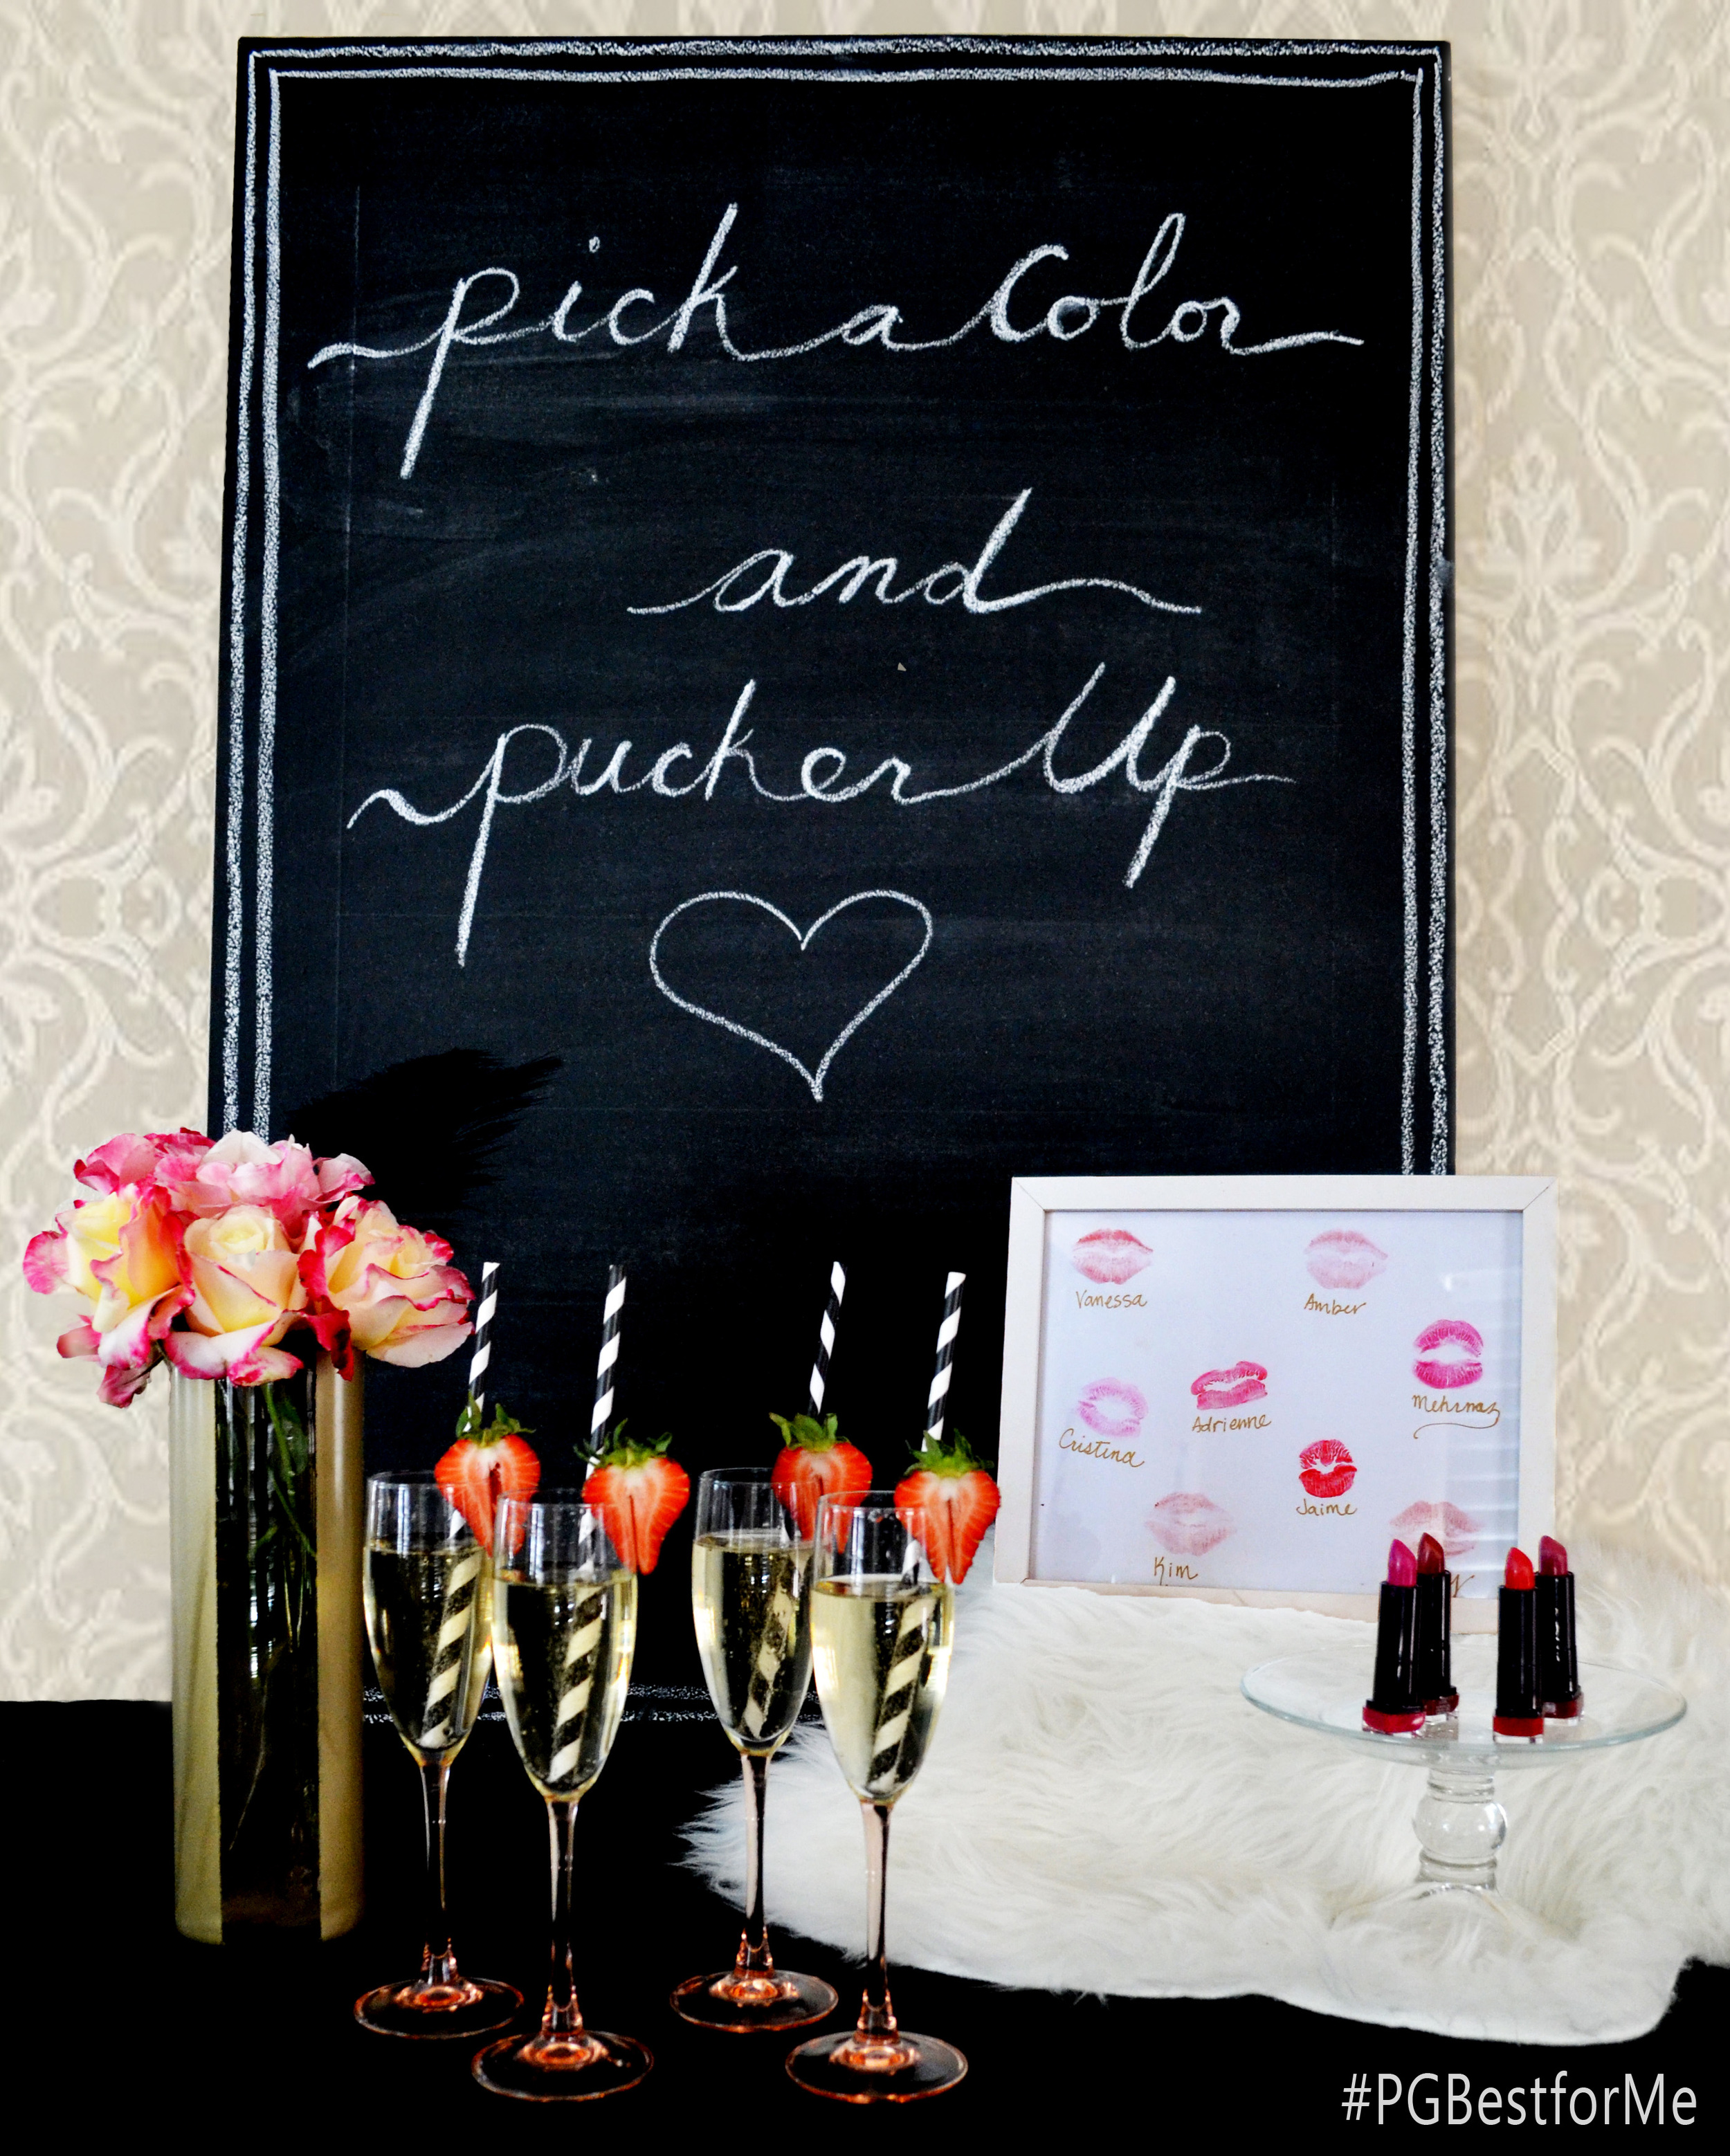 Planning a bachelorette party or girls night out? Have your girlfriends pick a color and pucker up on a piece of paper as a keepsake for the special lady.